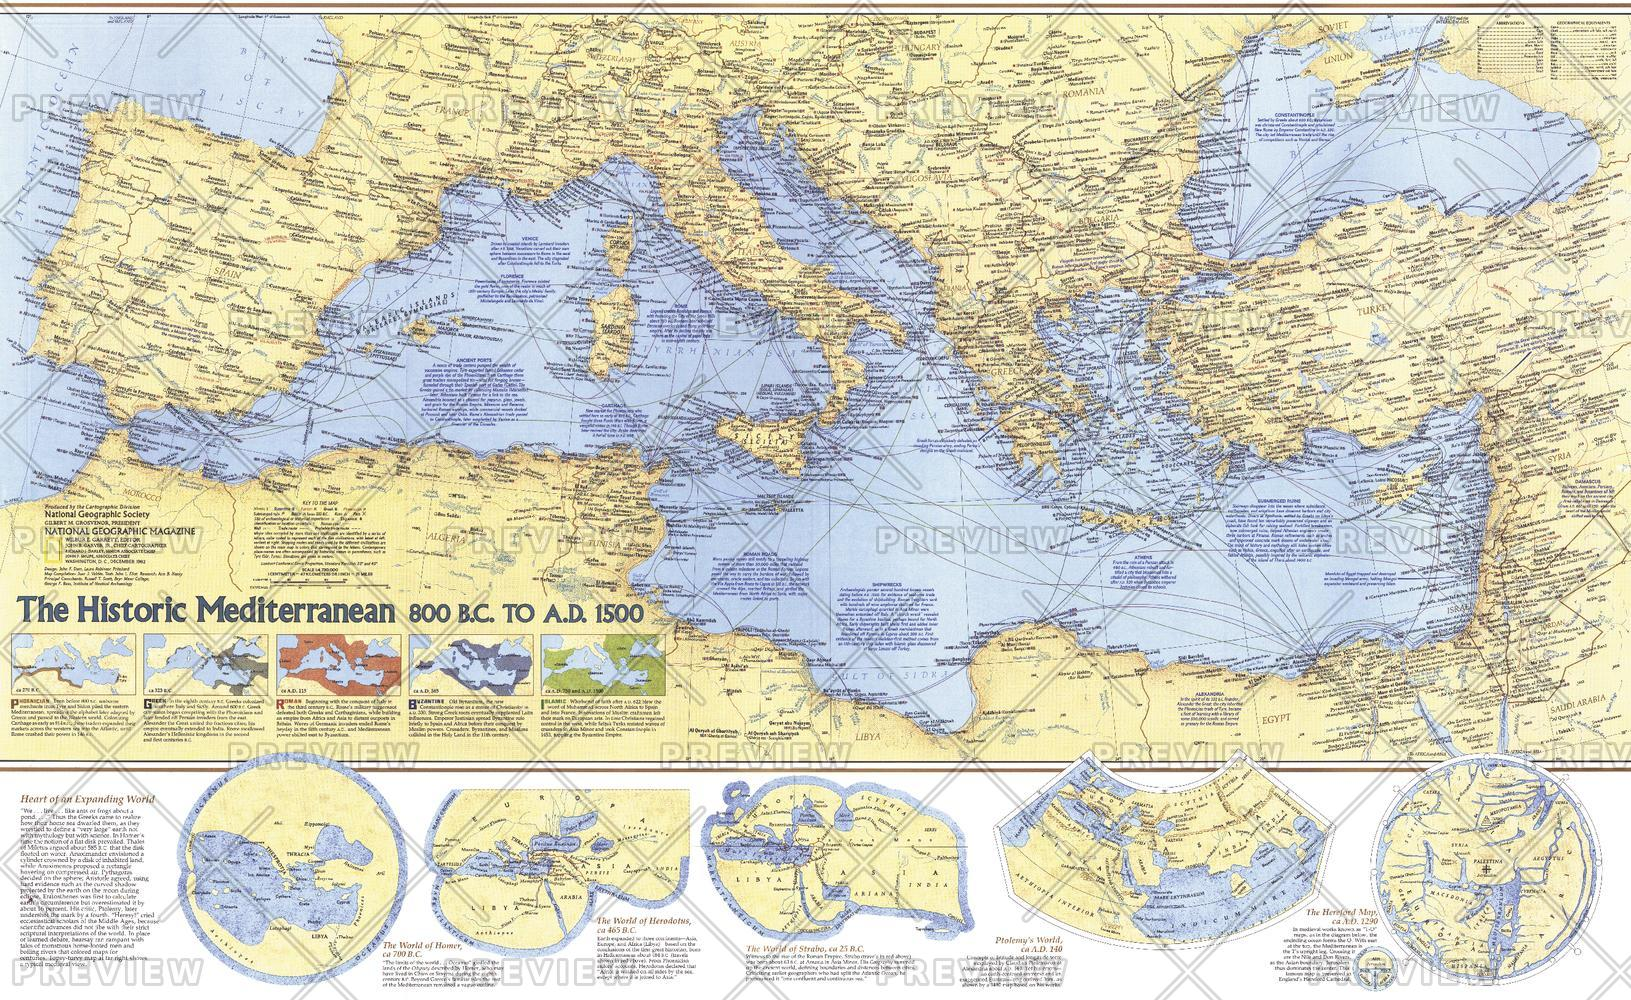 Historic Mediterranean, 800 BC to AD 1500  -  Published 1982